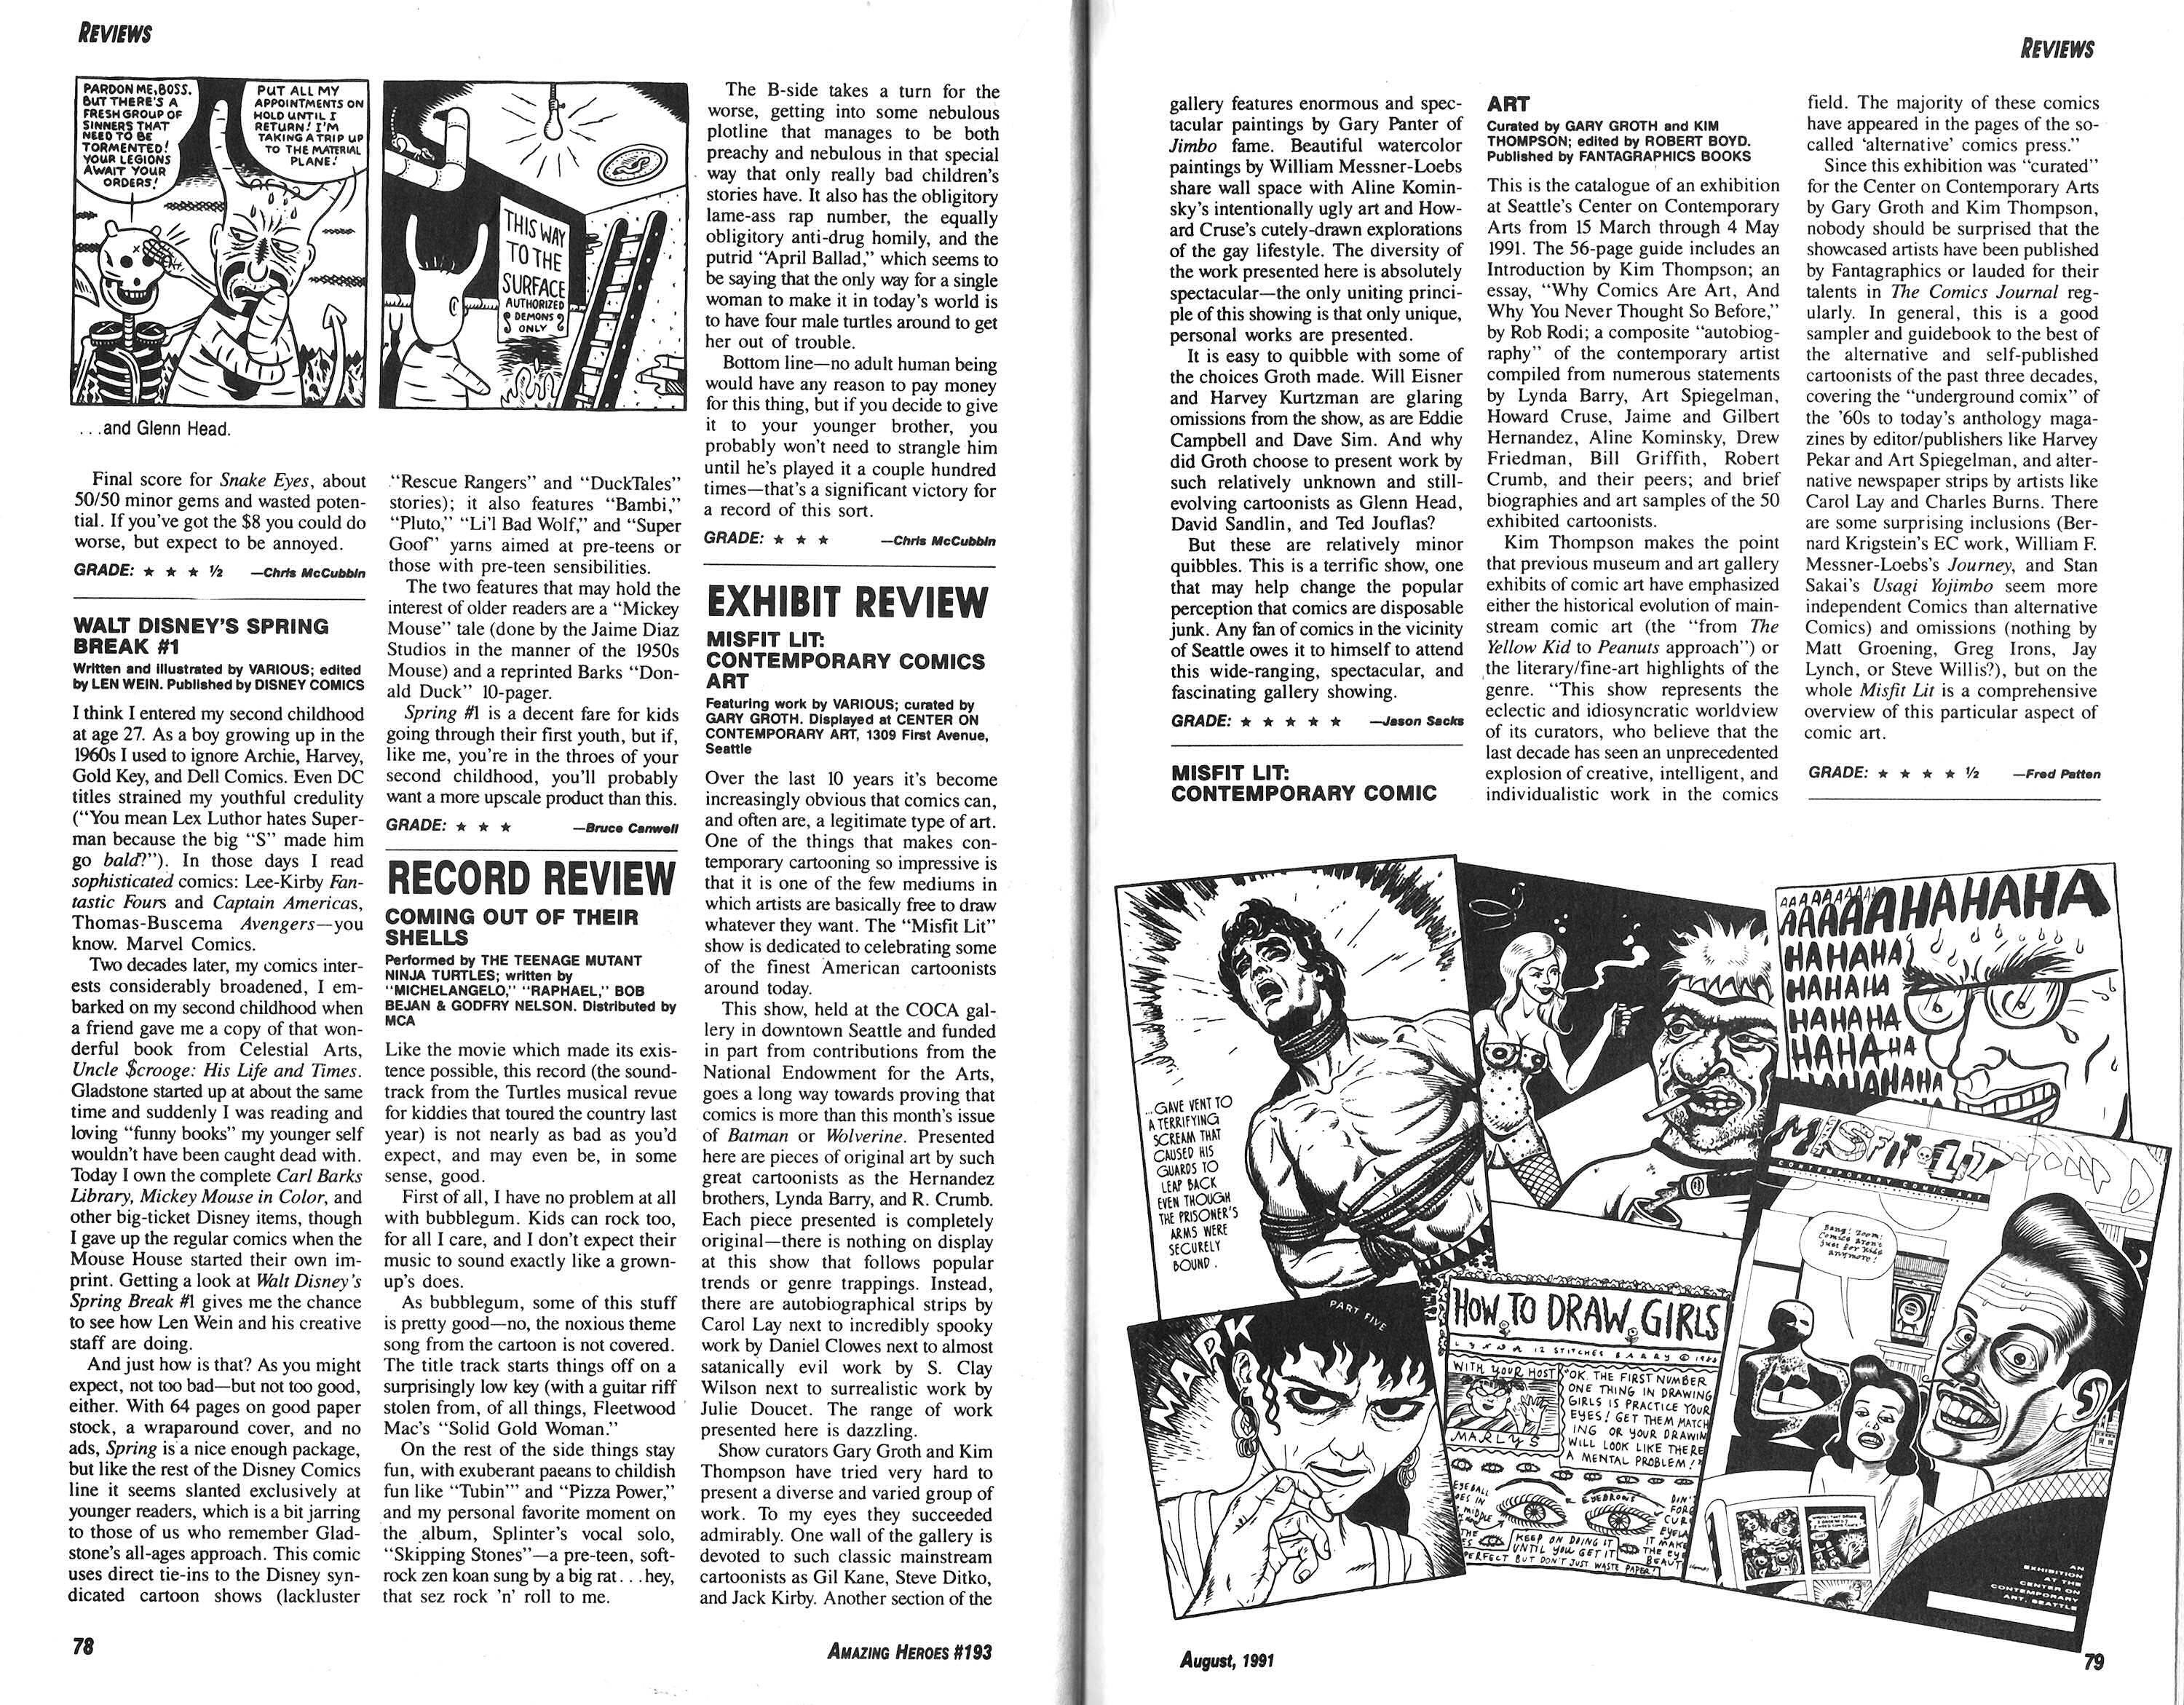 Read online Amazing Heroes comic -  Issue #193 - 40